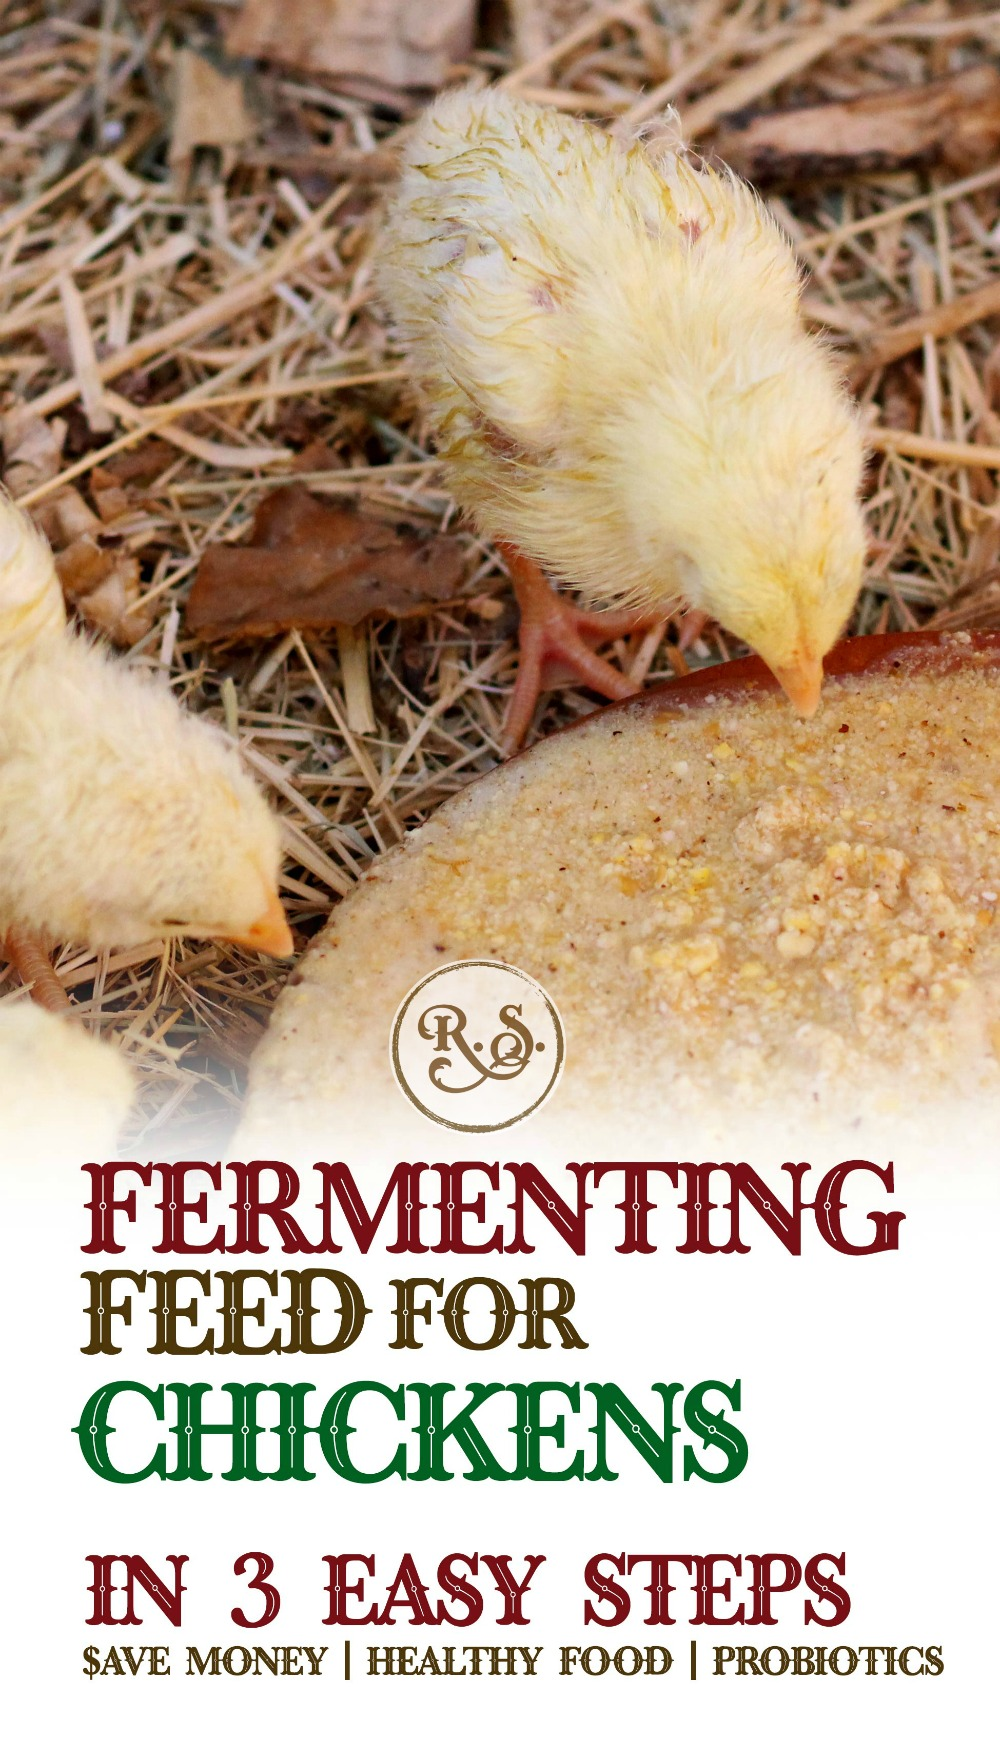 Fermenting chicken feed for your backyard chickens is a great way to save money on their food. Fermented feed can be fed for your hens, baby chicks, egg layers, broilers or meat chickens.